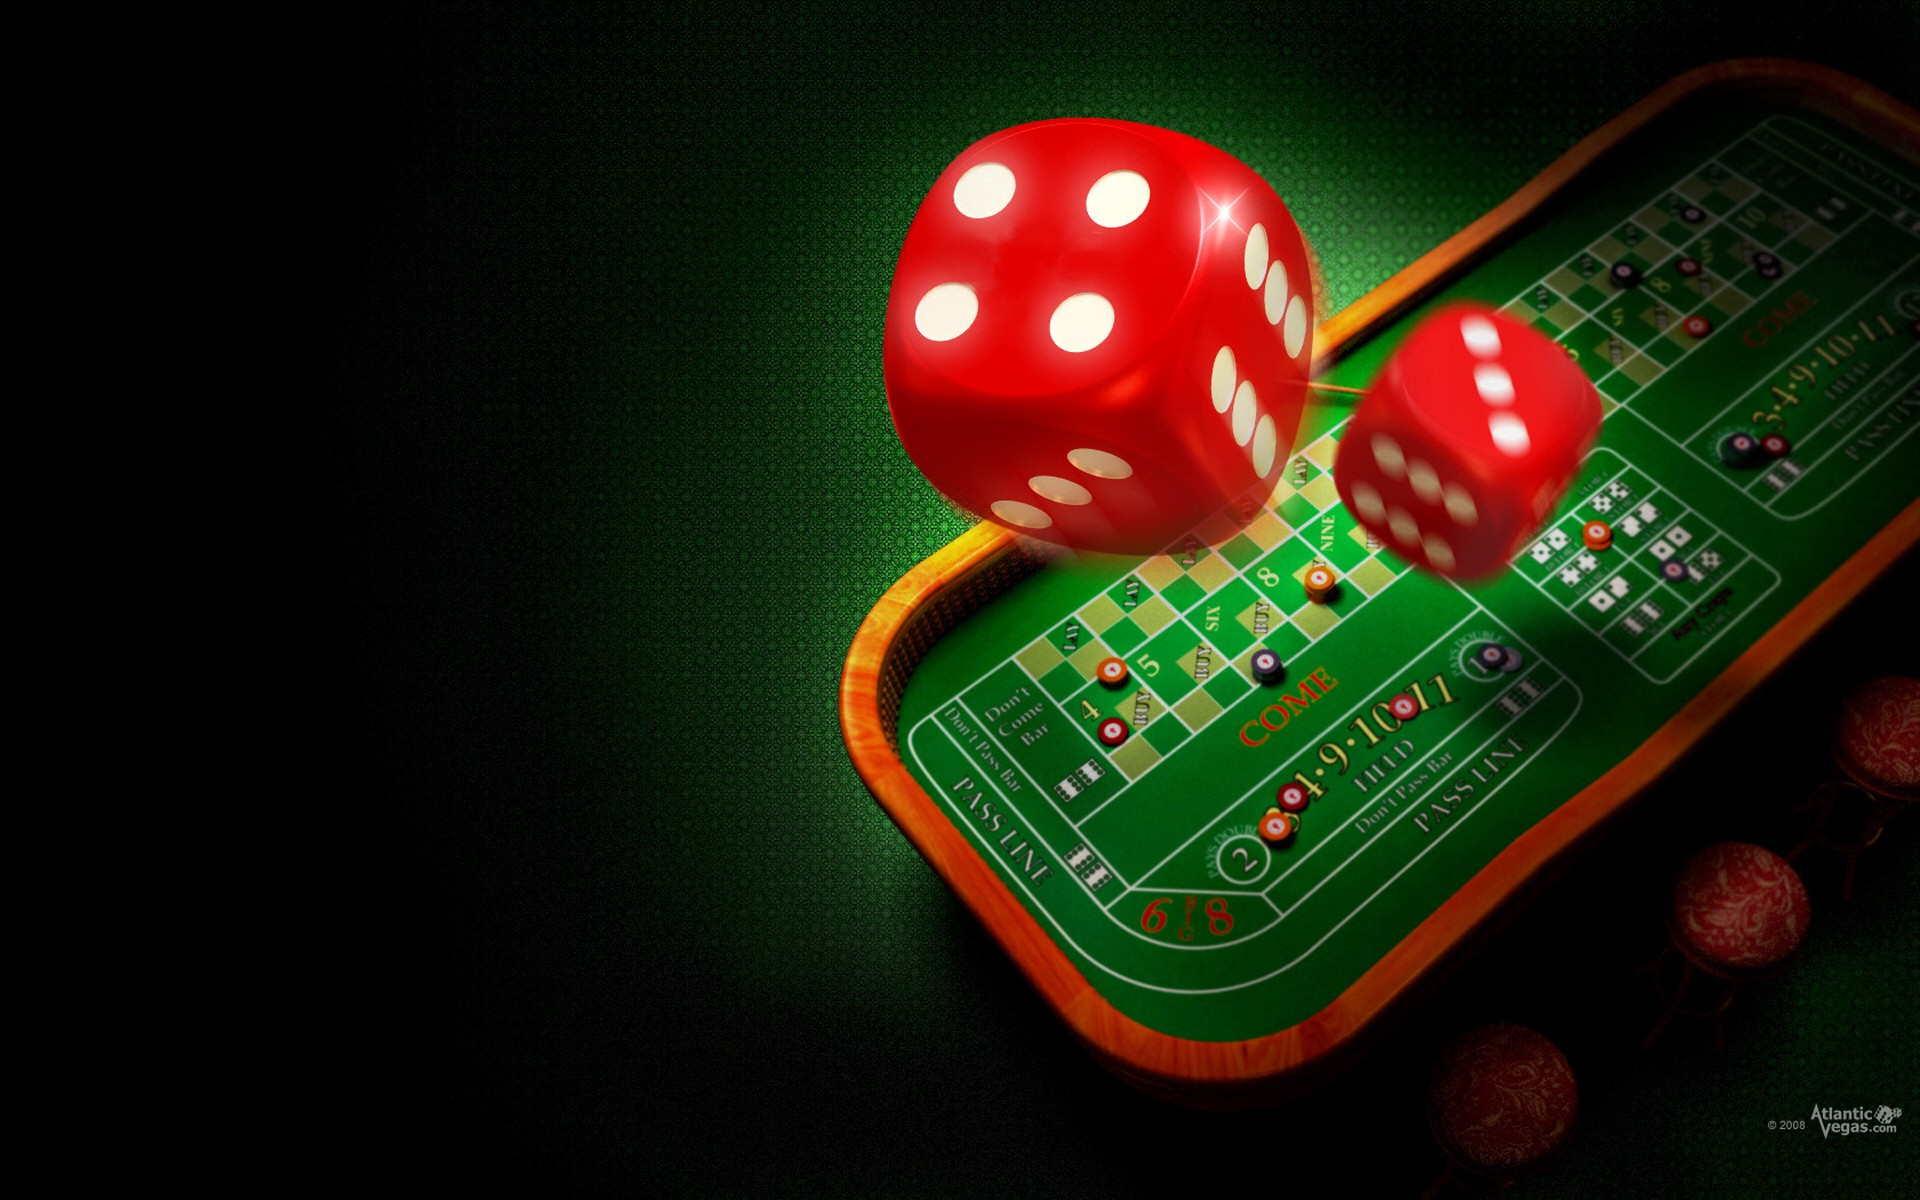 What All People Dislikes About Casino And Why?